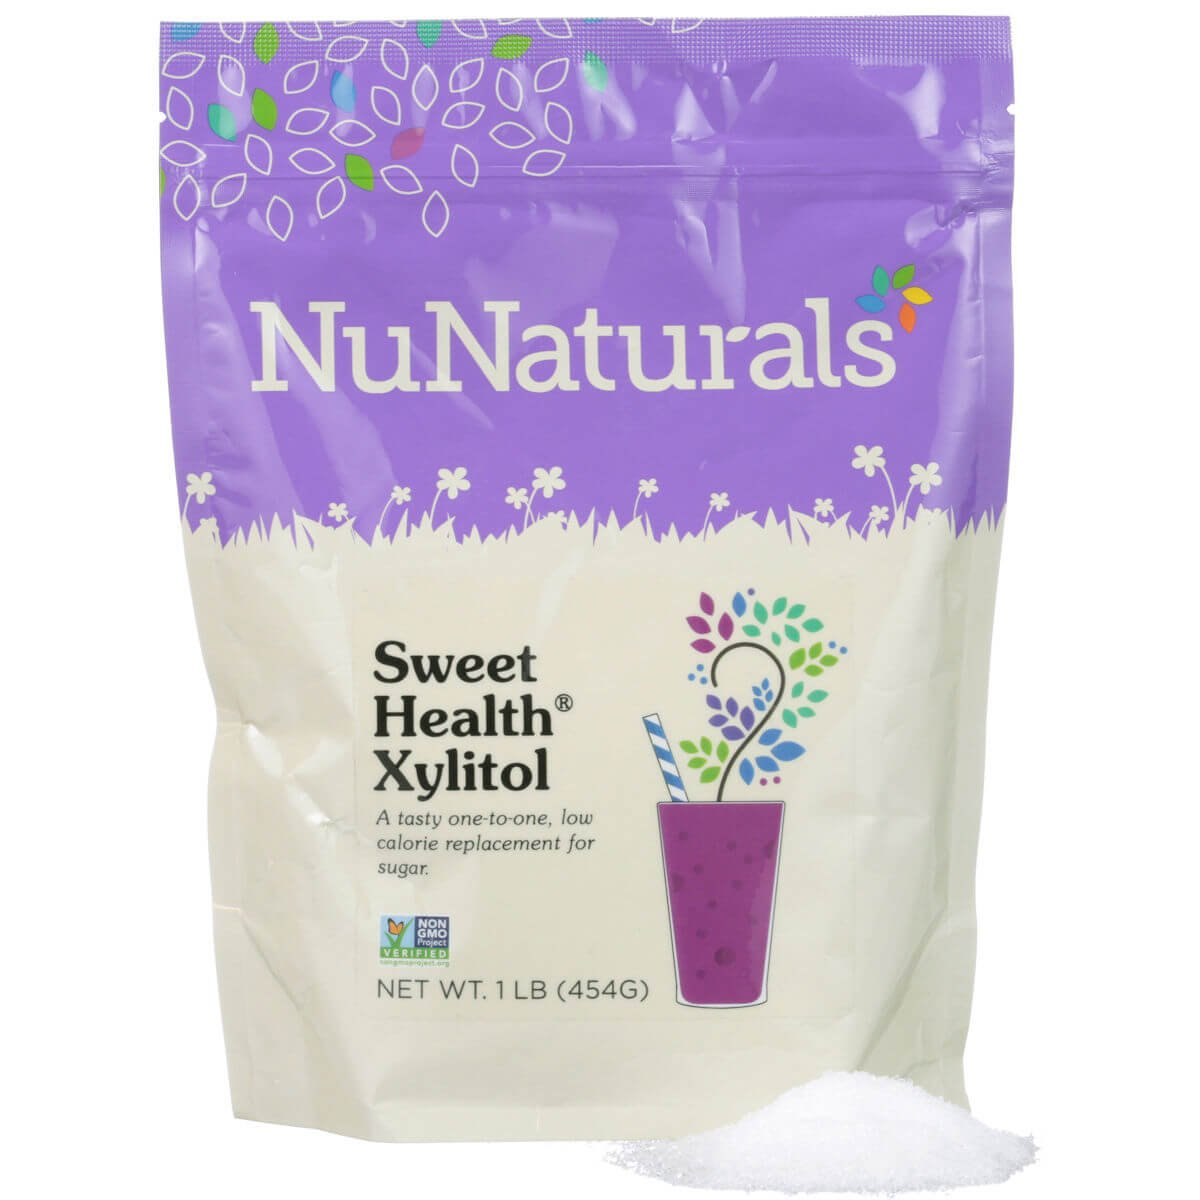 NuNaturals - Sweet Health Pure Xylitol (Keto Diet Friendly) - Natural Sweetener Non GMO - Gluten Free - 1 lb by NuNaturals